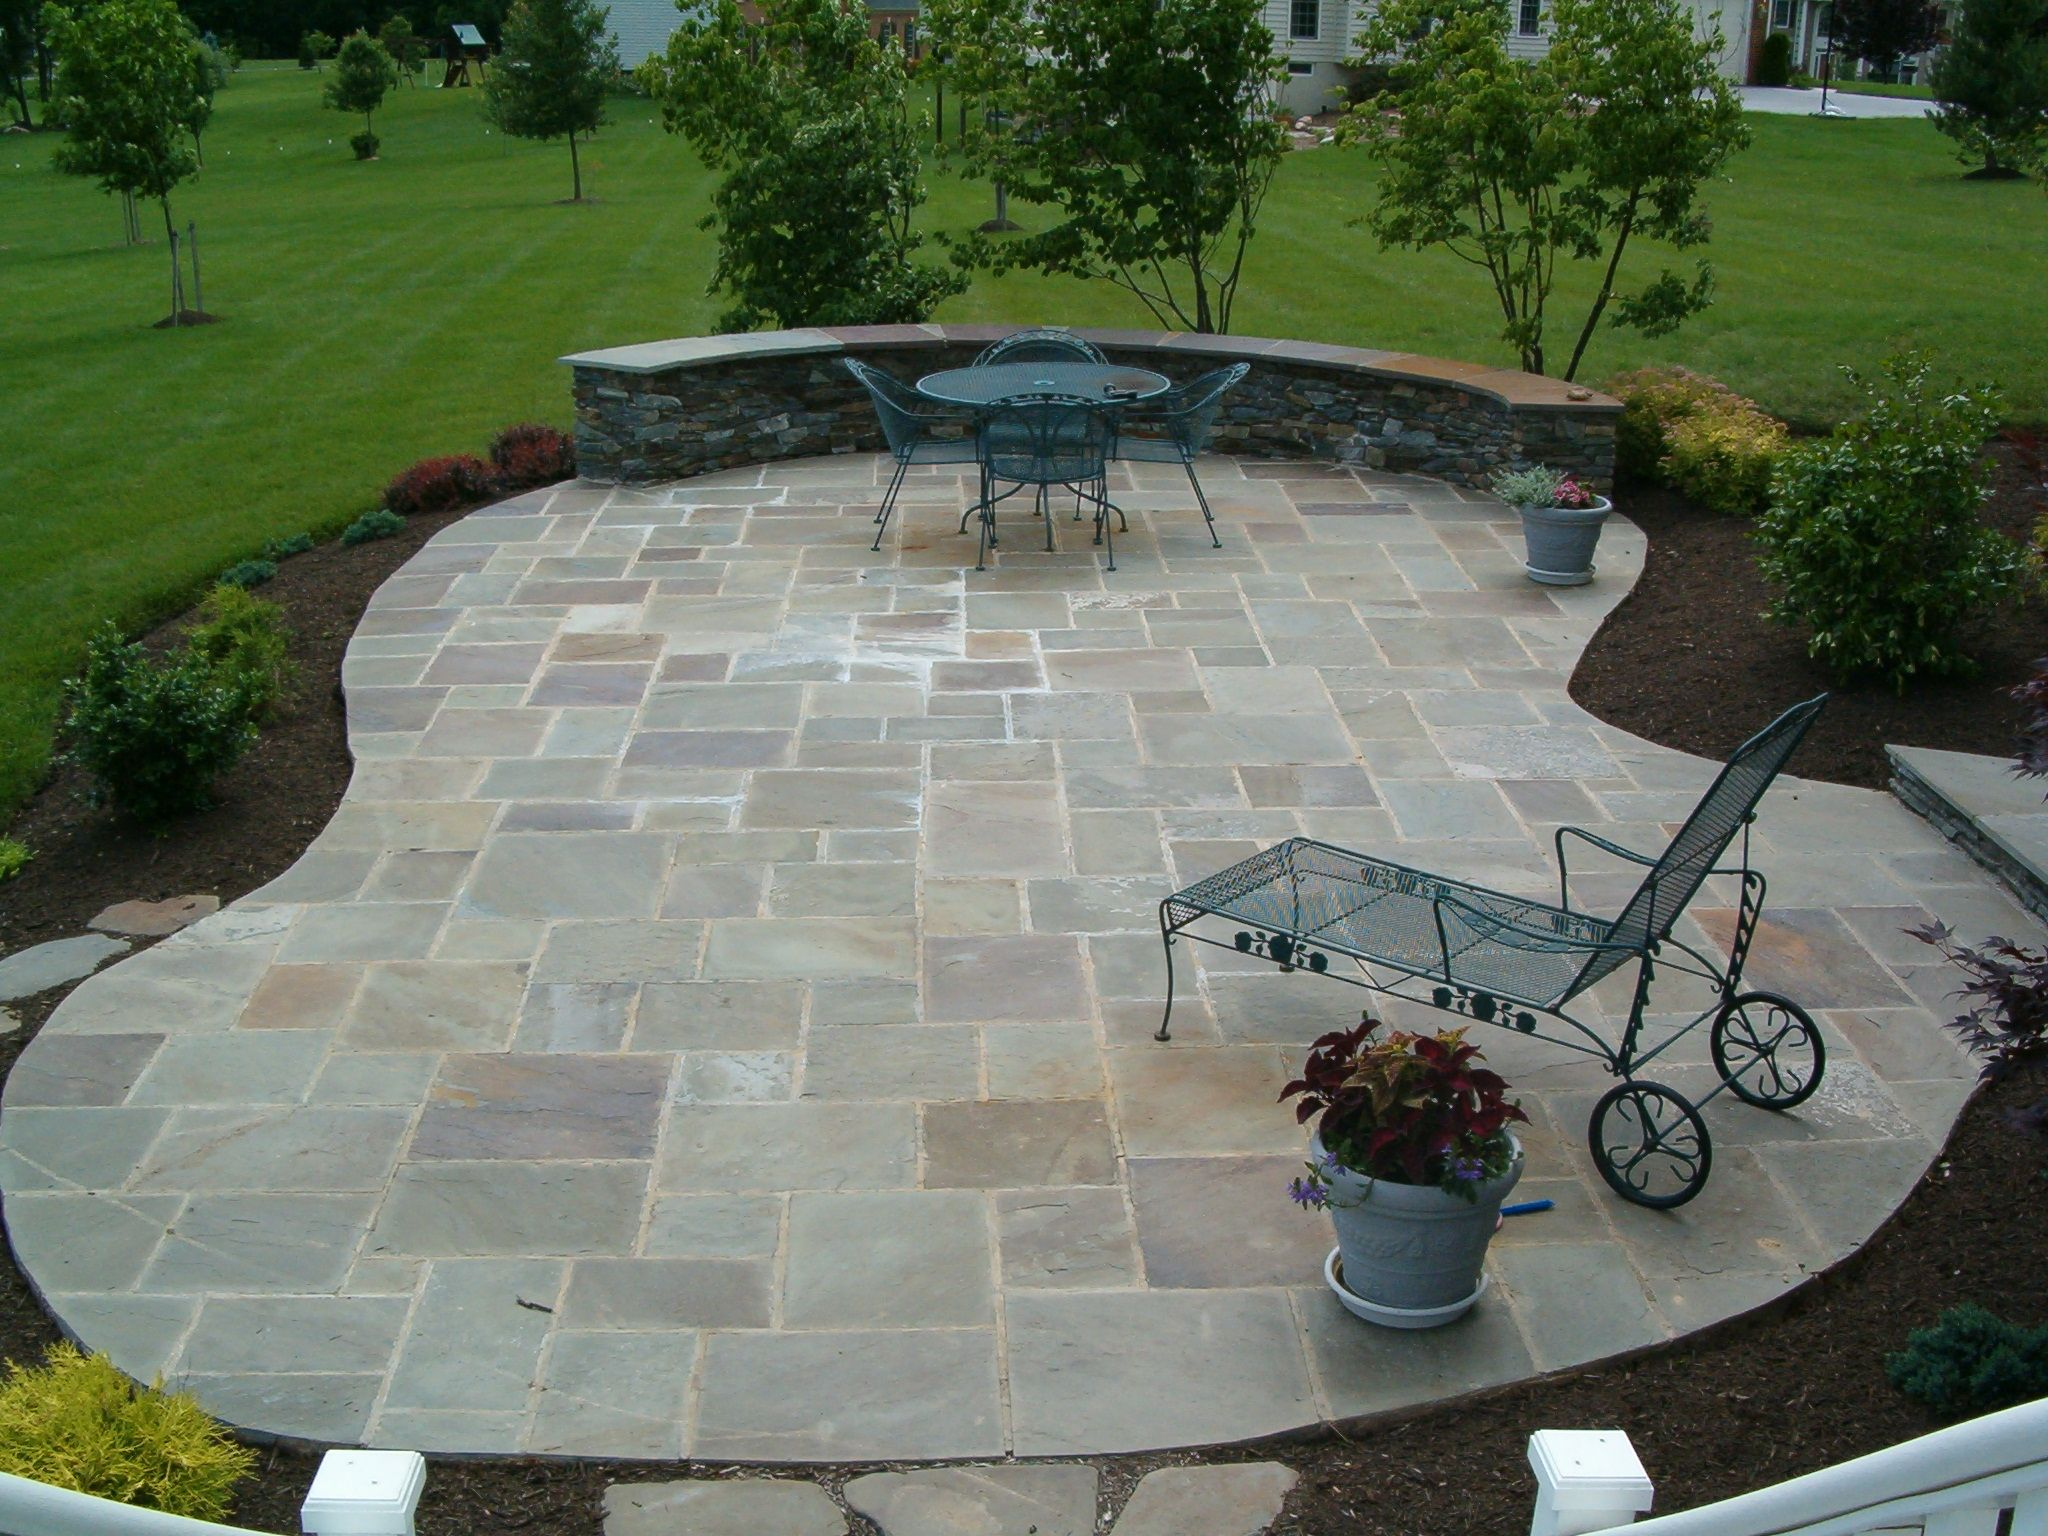 26 Stone Patio Designs For Your Home Outdoor Living Landscaping for 11 Smart Initiatives of How to Craft Backyard Stone Patio Design Ideas